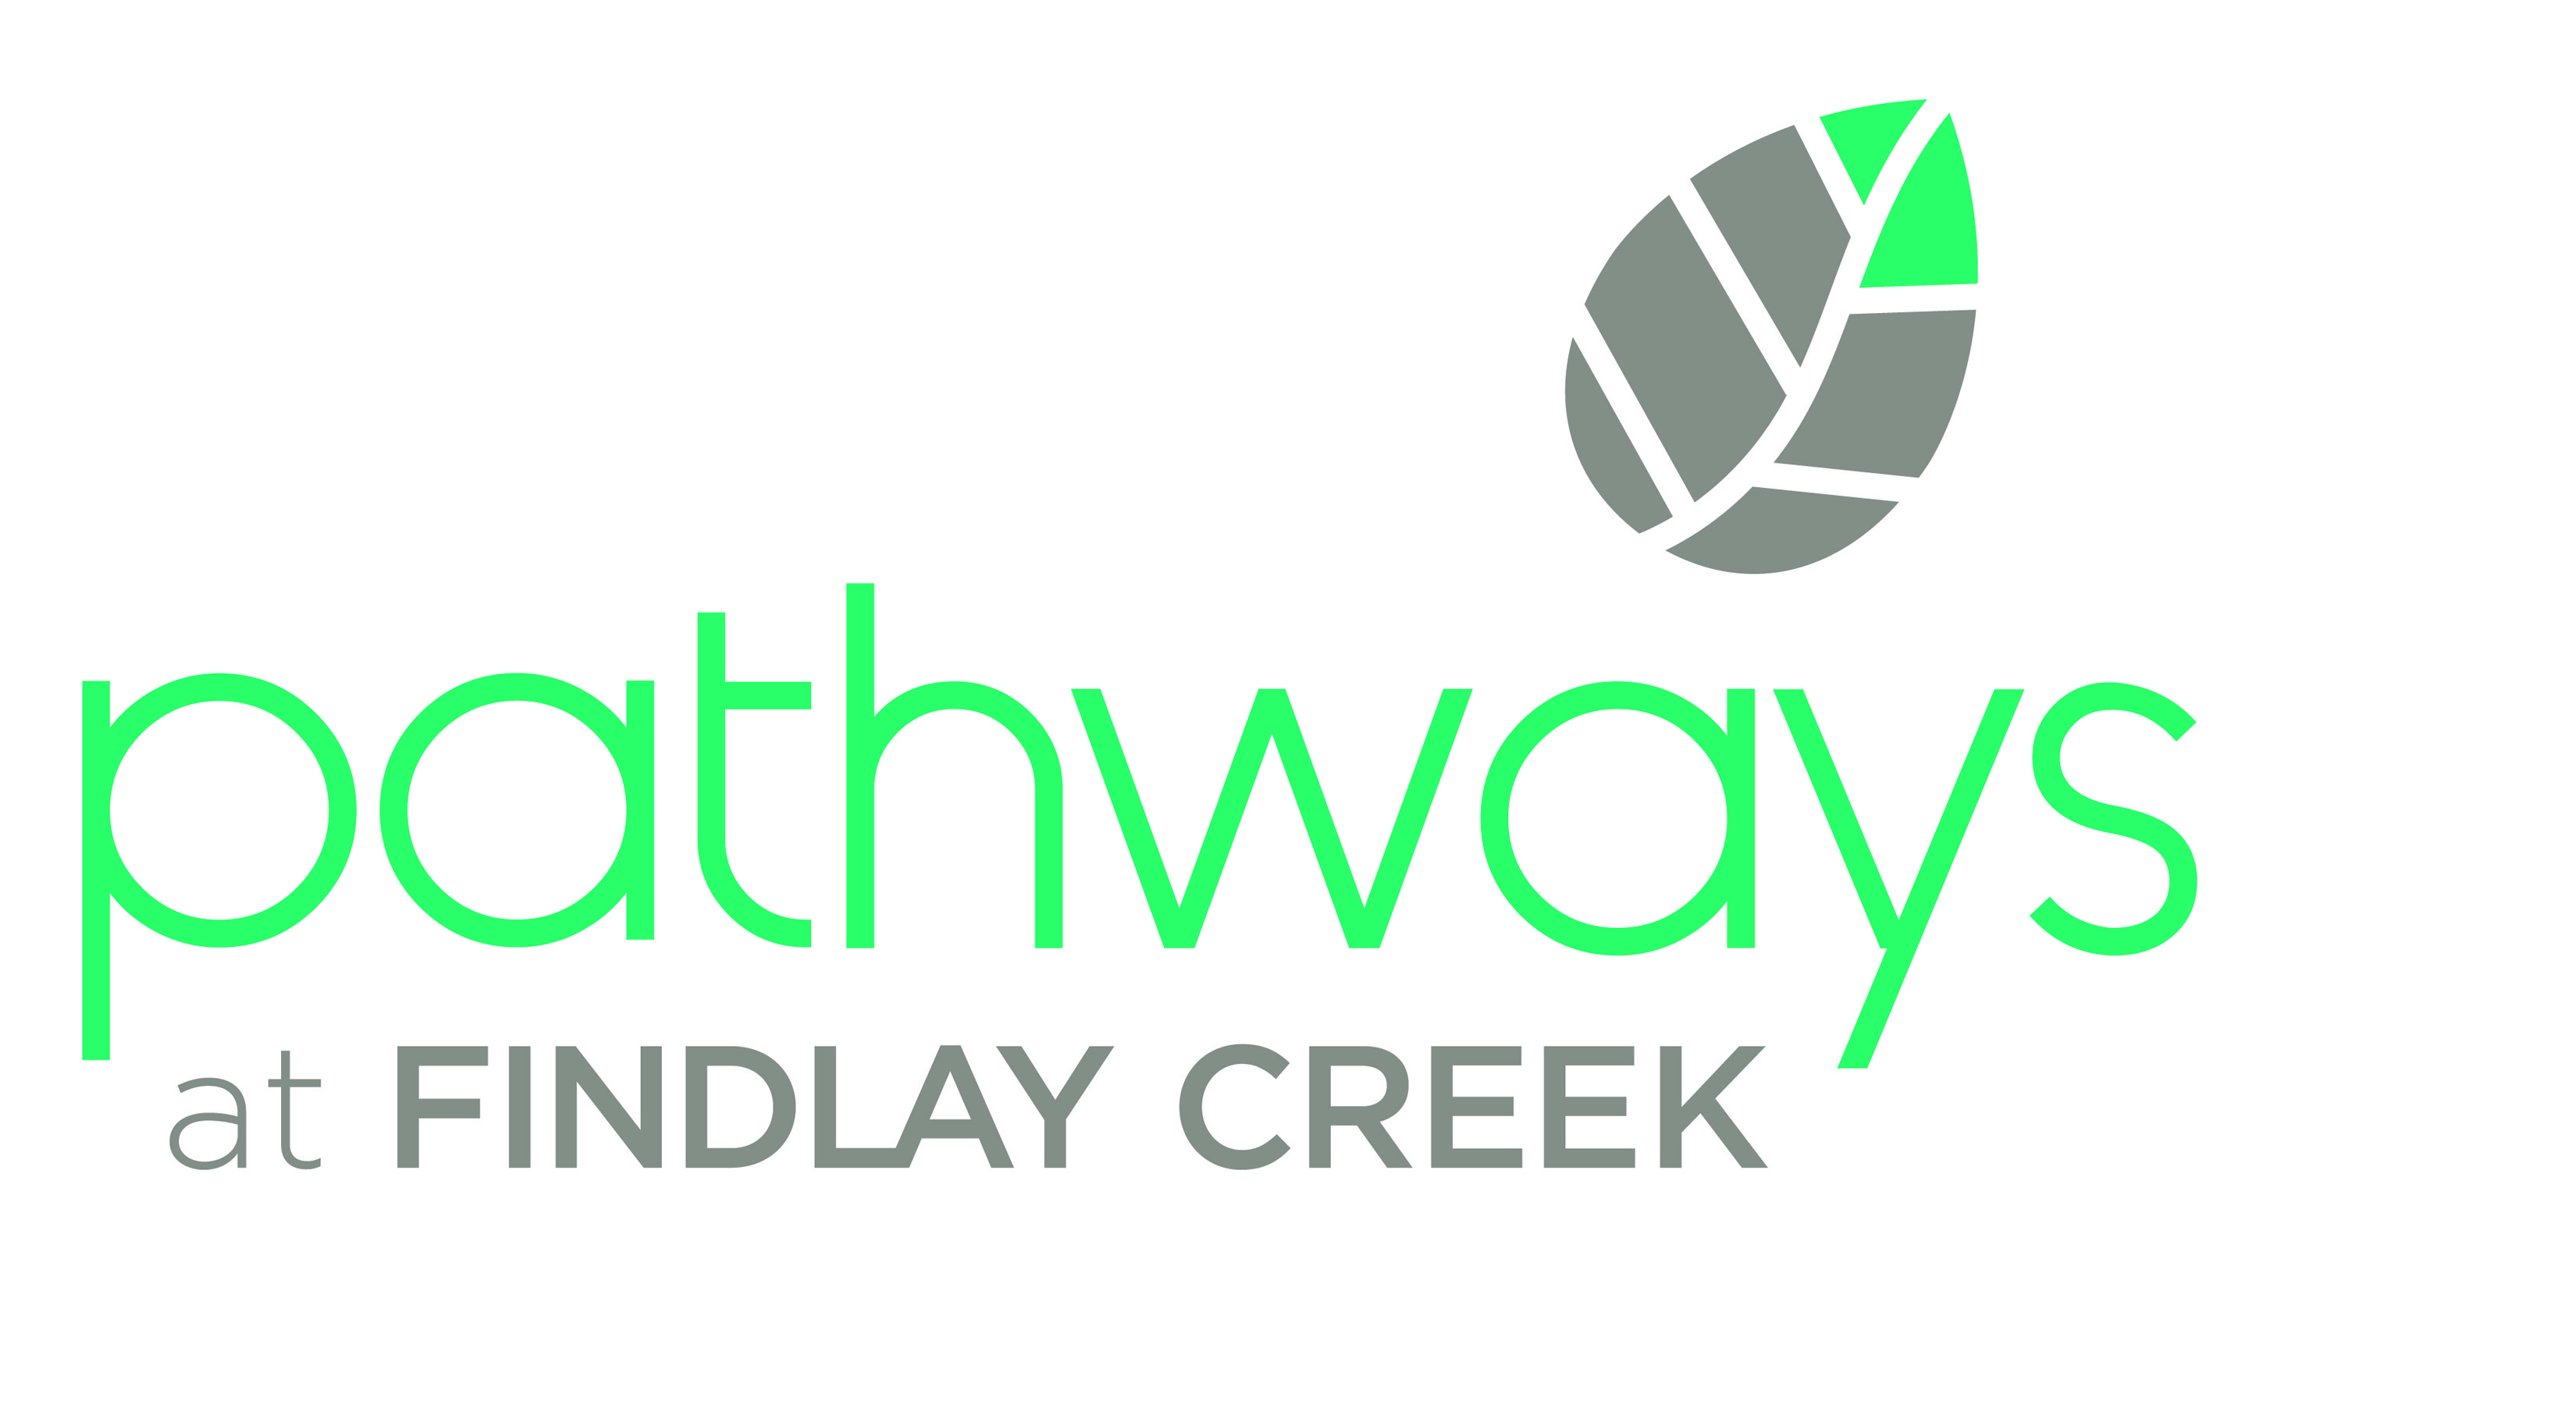 Pathways at Findlay Creek